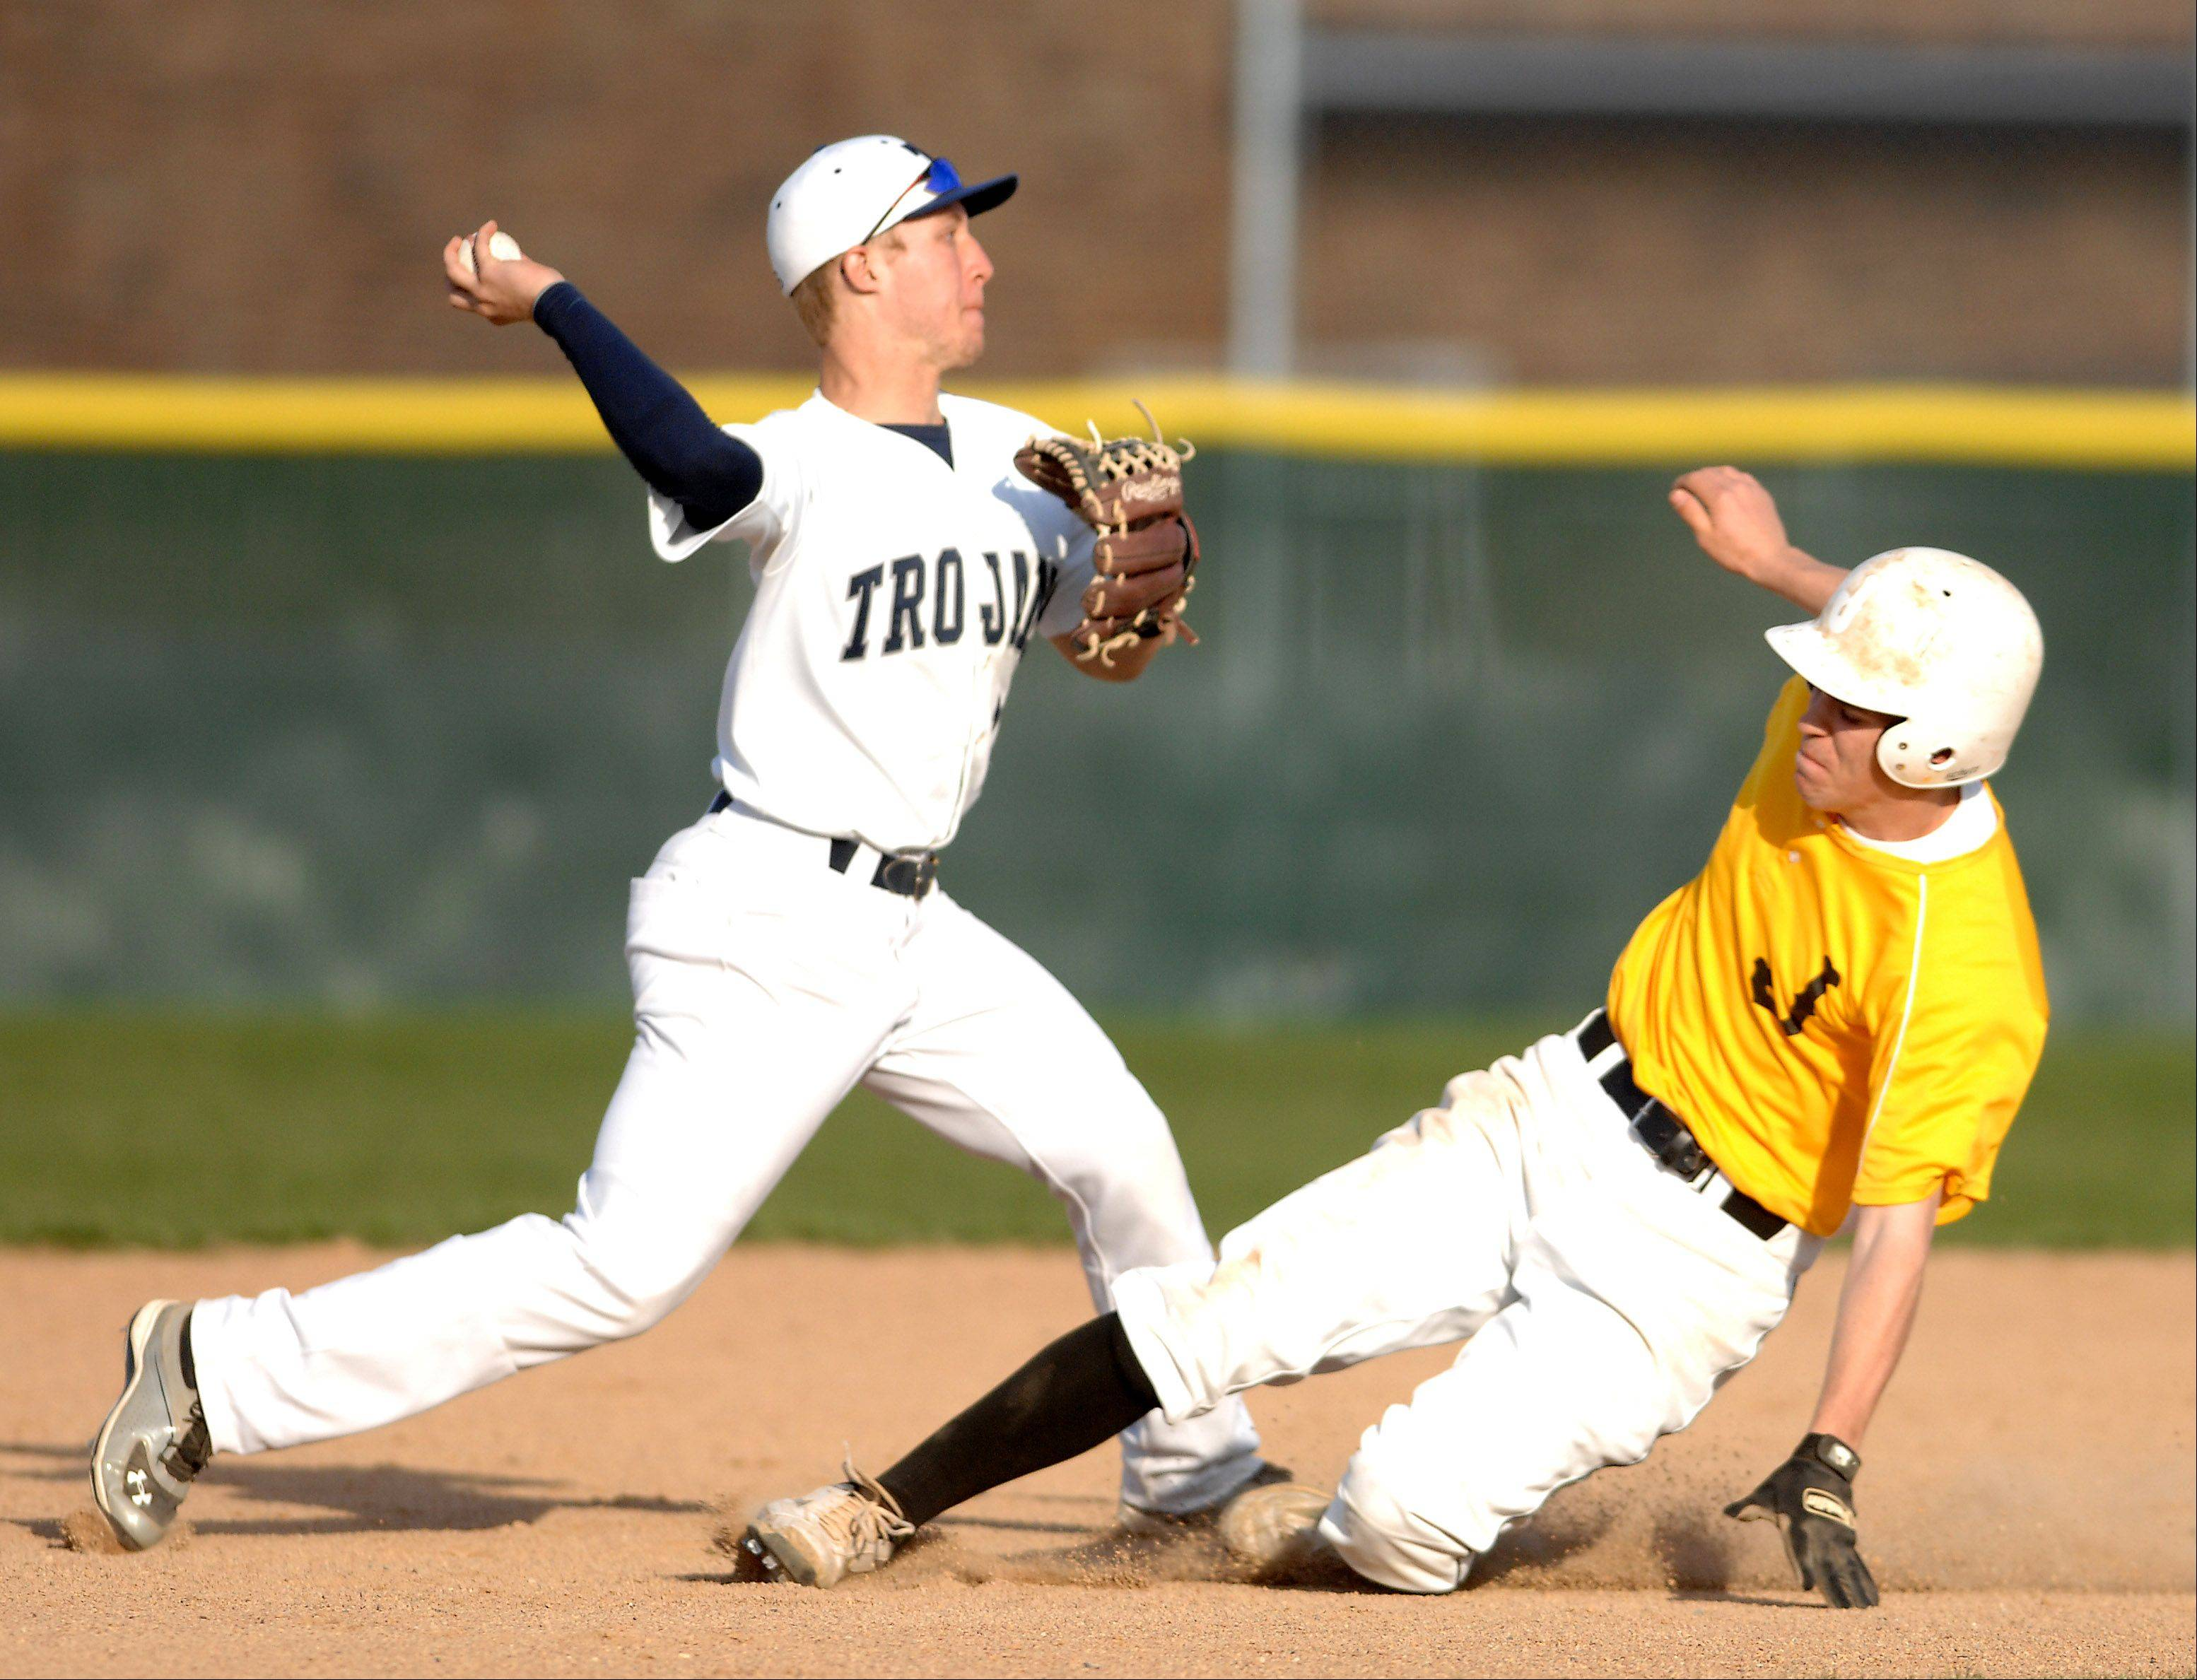 Cary-Grove�s Jeremy Vasquez turns a double play as Matt Hickey of Jacobs bears down on him during Friday�s game in Cary.